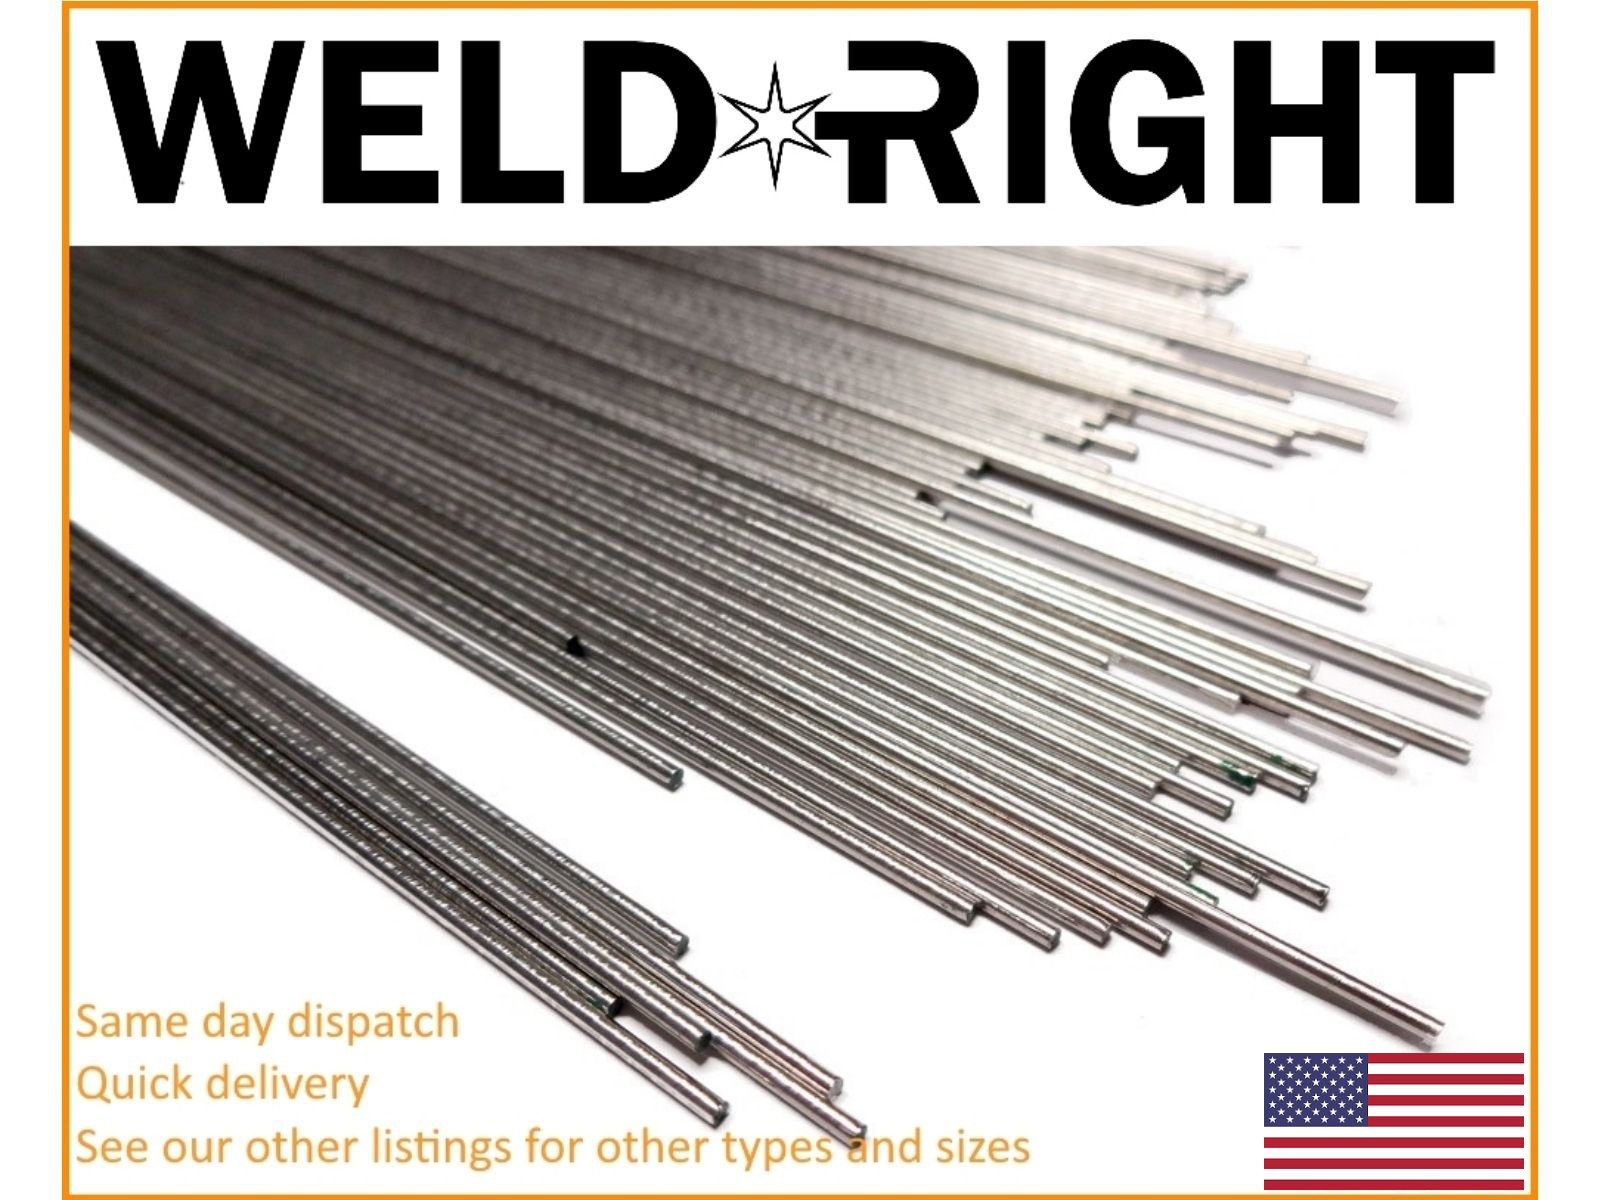 Weld Right Stainless Steel ER316L SS Tig Filler Welding Rods 1/8's - 3.2mm x 1,2,5,10lbs - 13 inches in length by Weldright